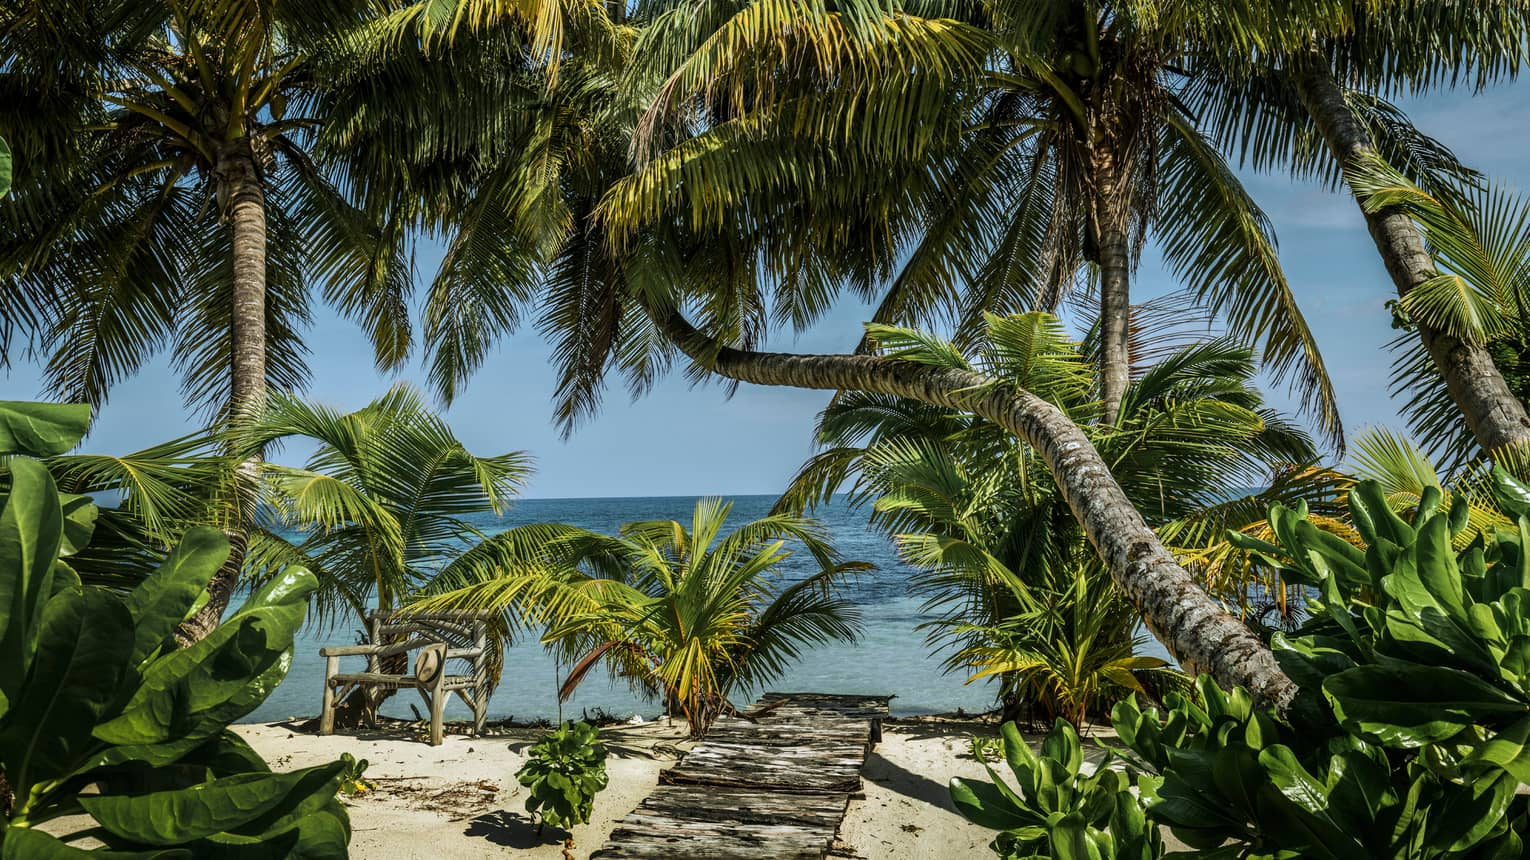 Palm trees with large leaves hang over sandy beach, walkway on sunny day